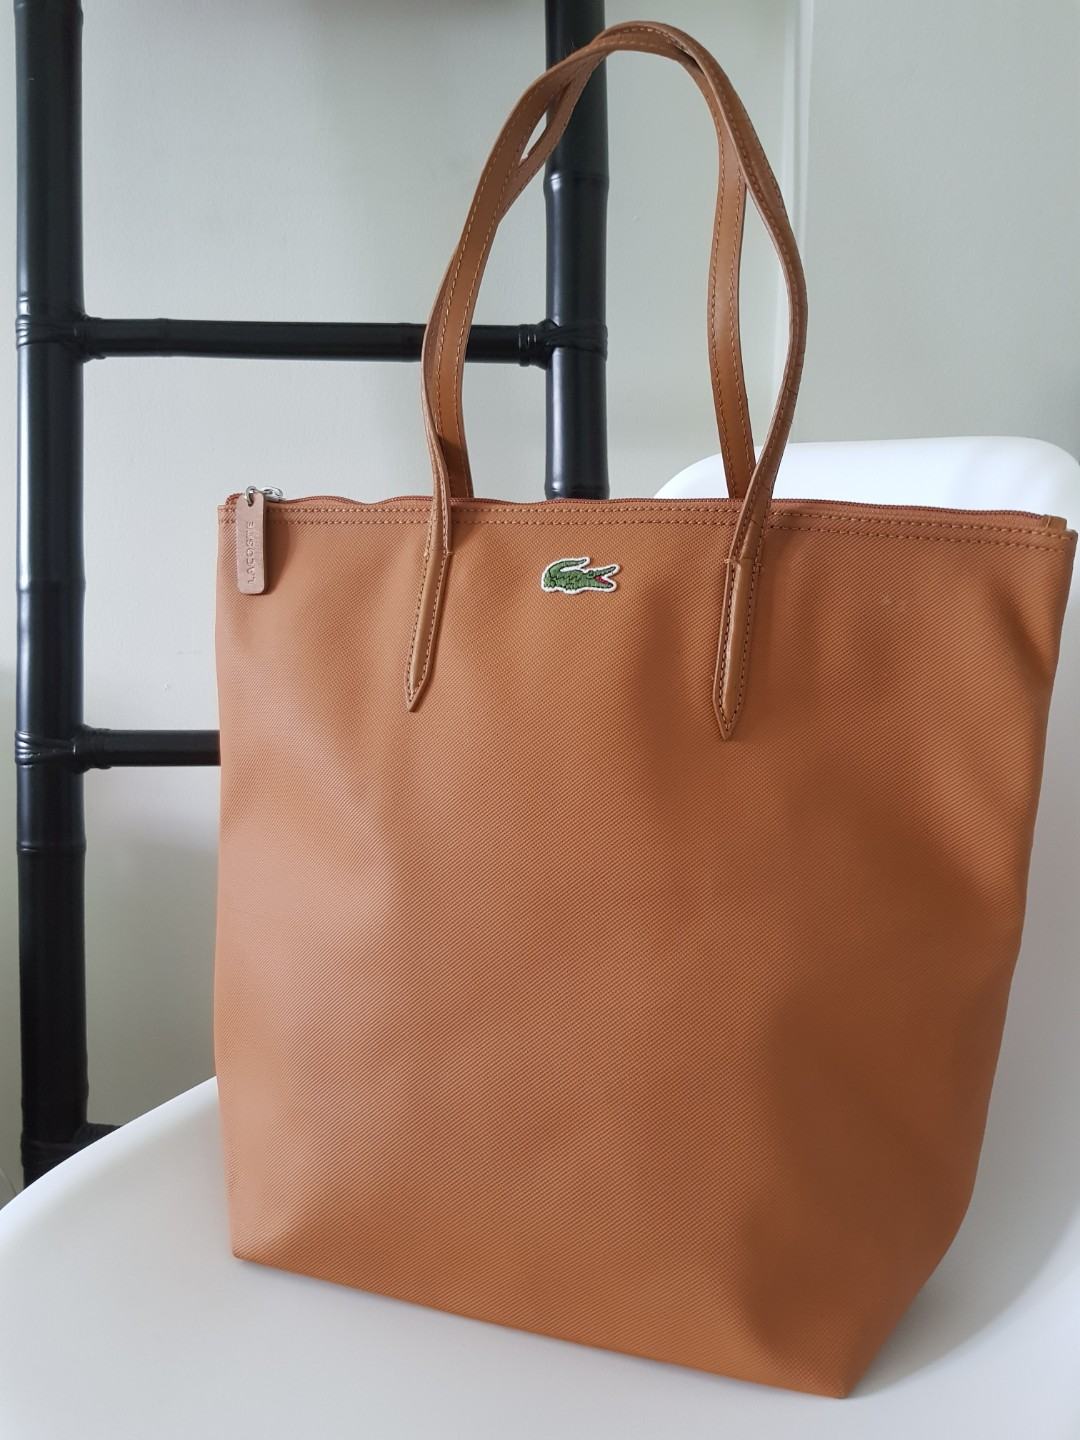 a897b5b8163 SOLD] Lacoste Vertical Tote Bag, camel brown, Women's Fashion, Bags ...